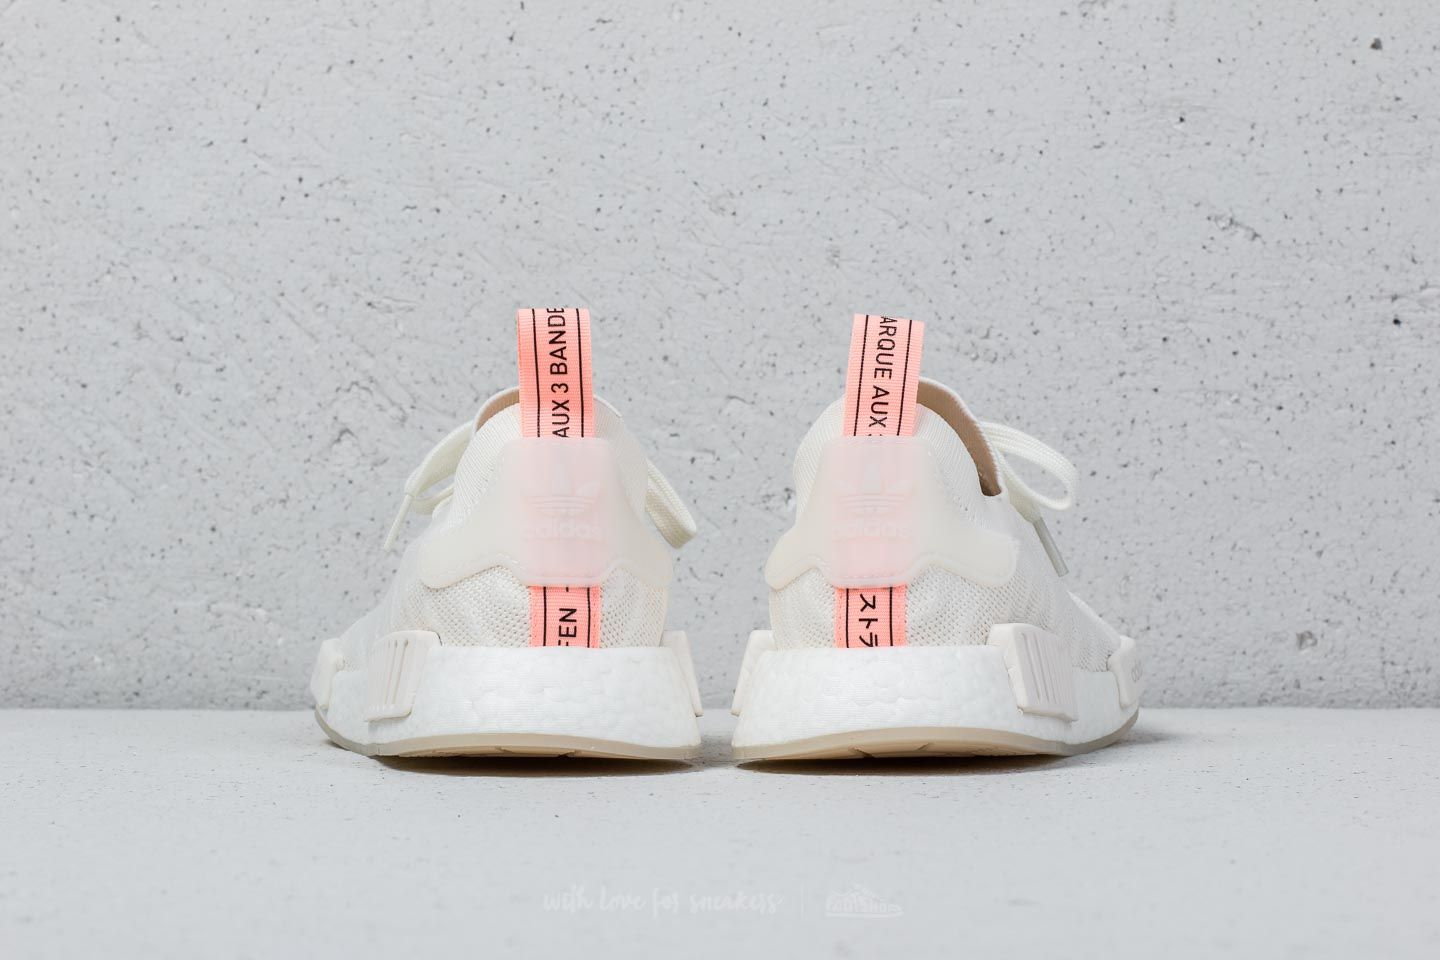 Women S Shoes Adidas Nmd R1 Stlt Primeknit W Cloud White Cloud